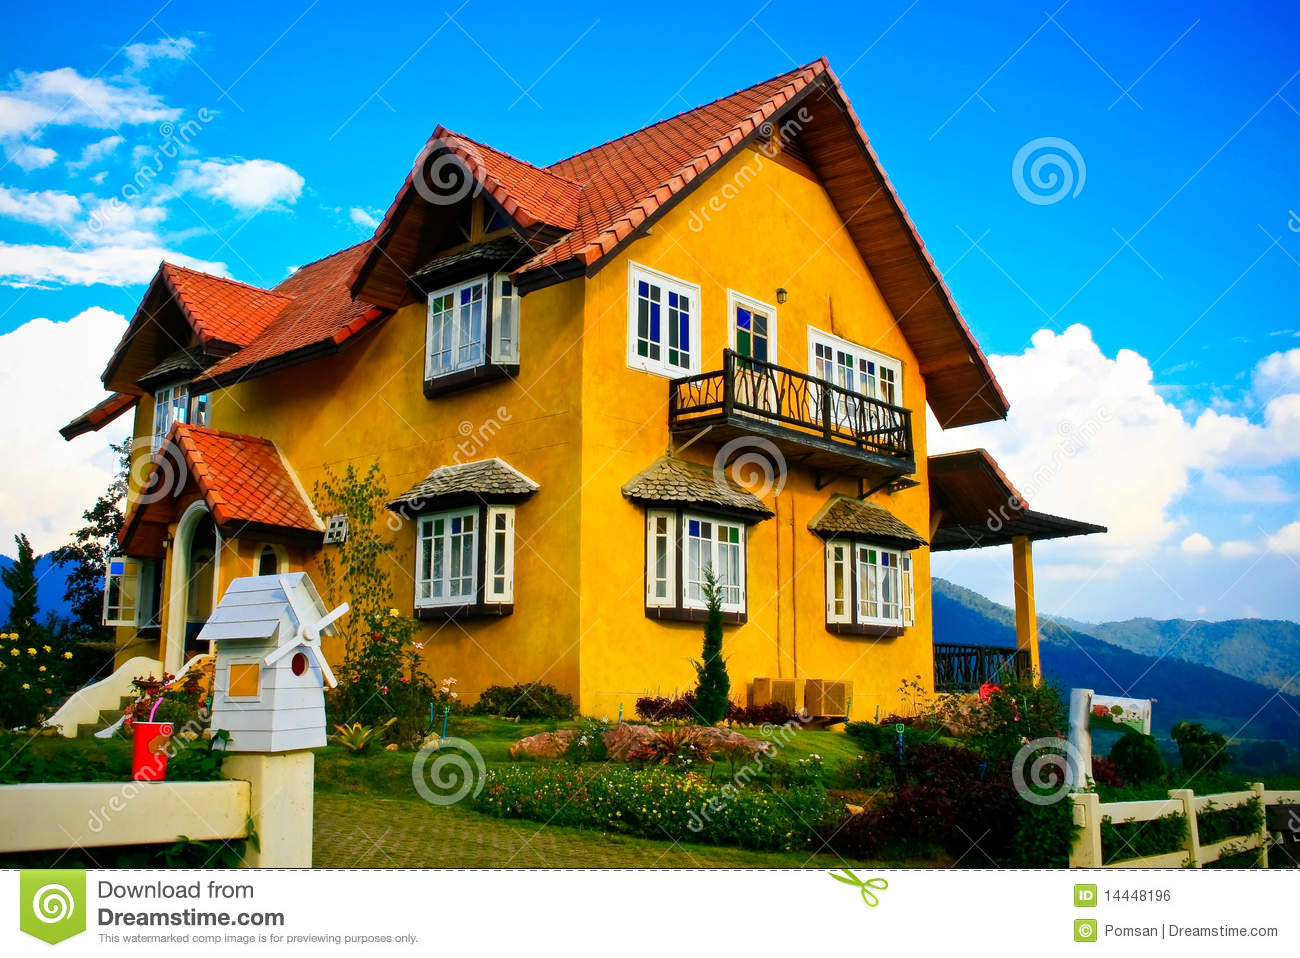 Cute house royalty free stock image image 14448196 for Big cute houses